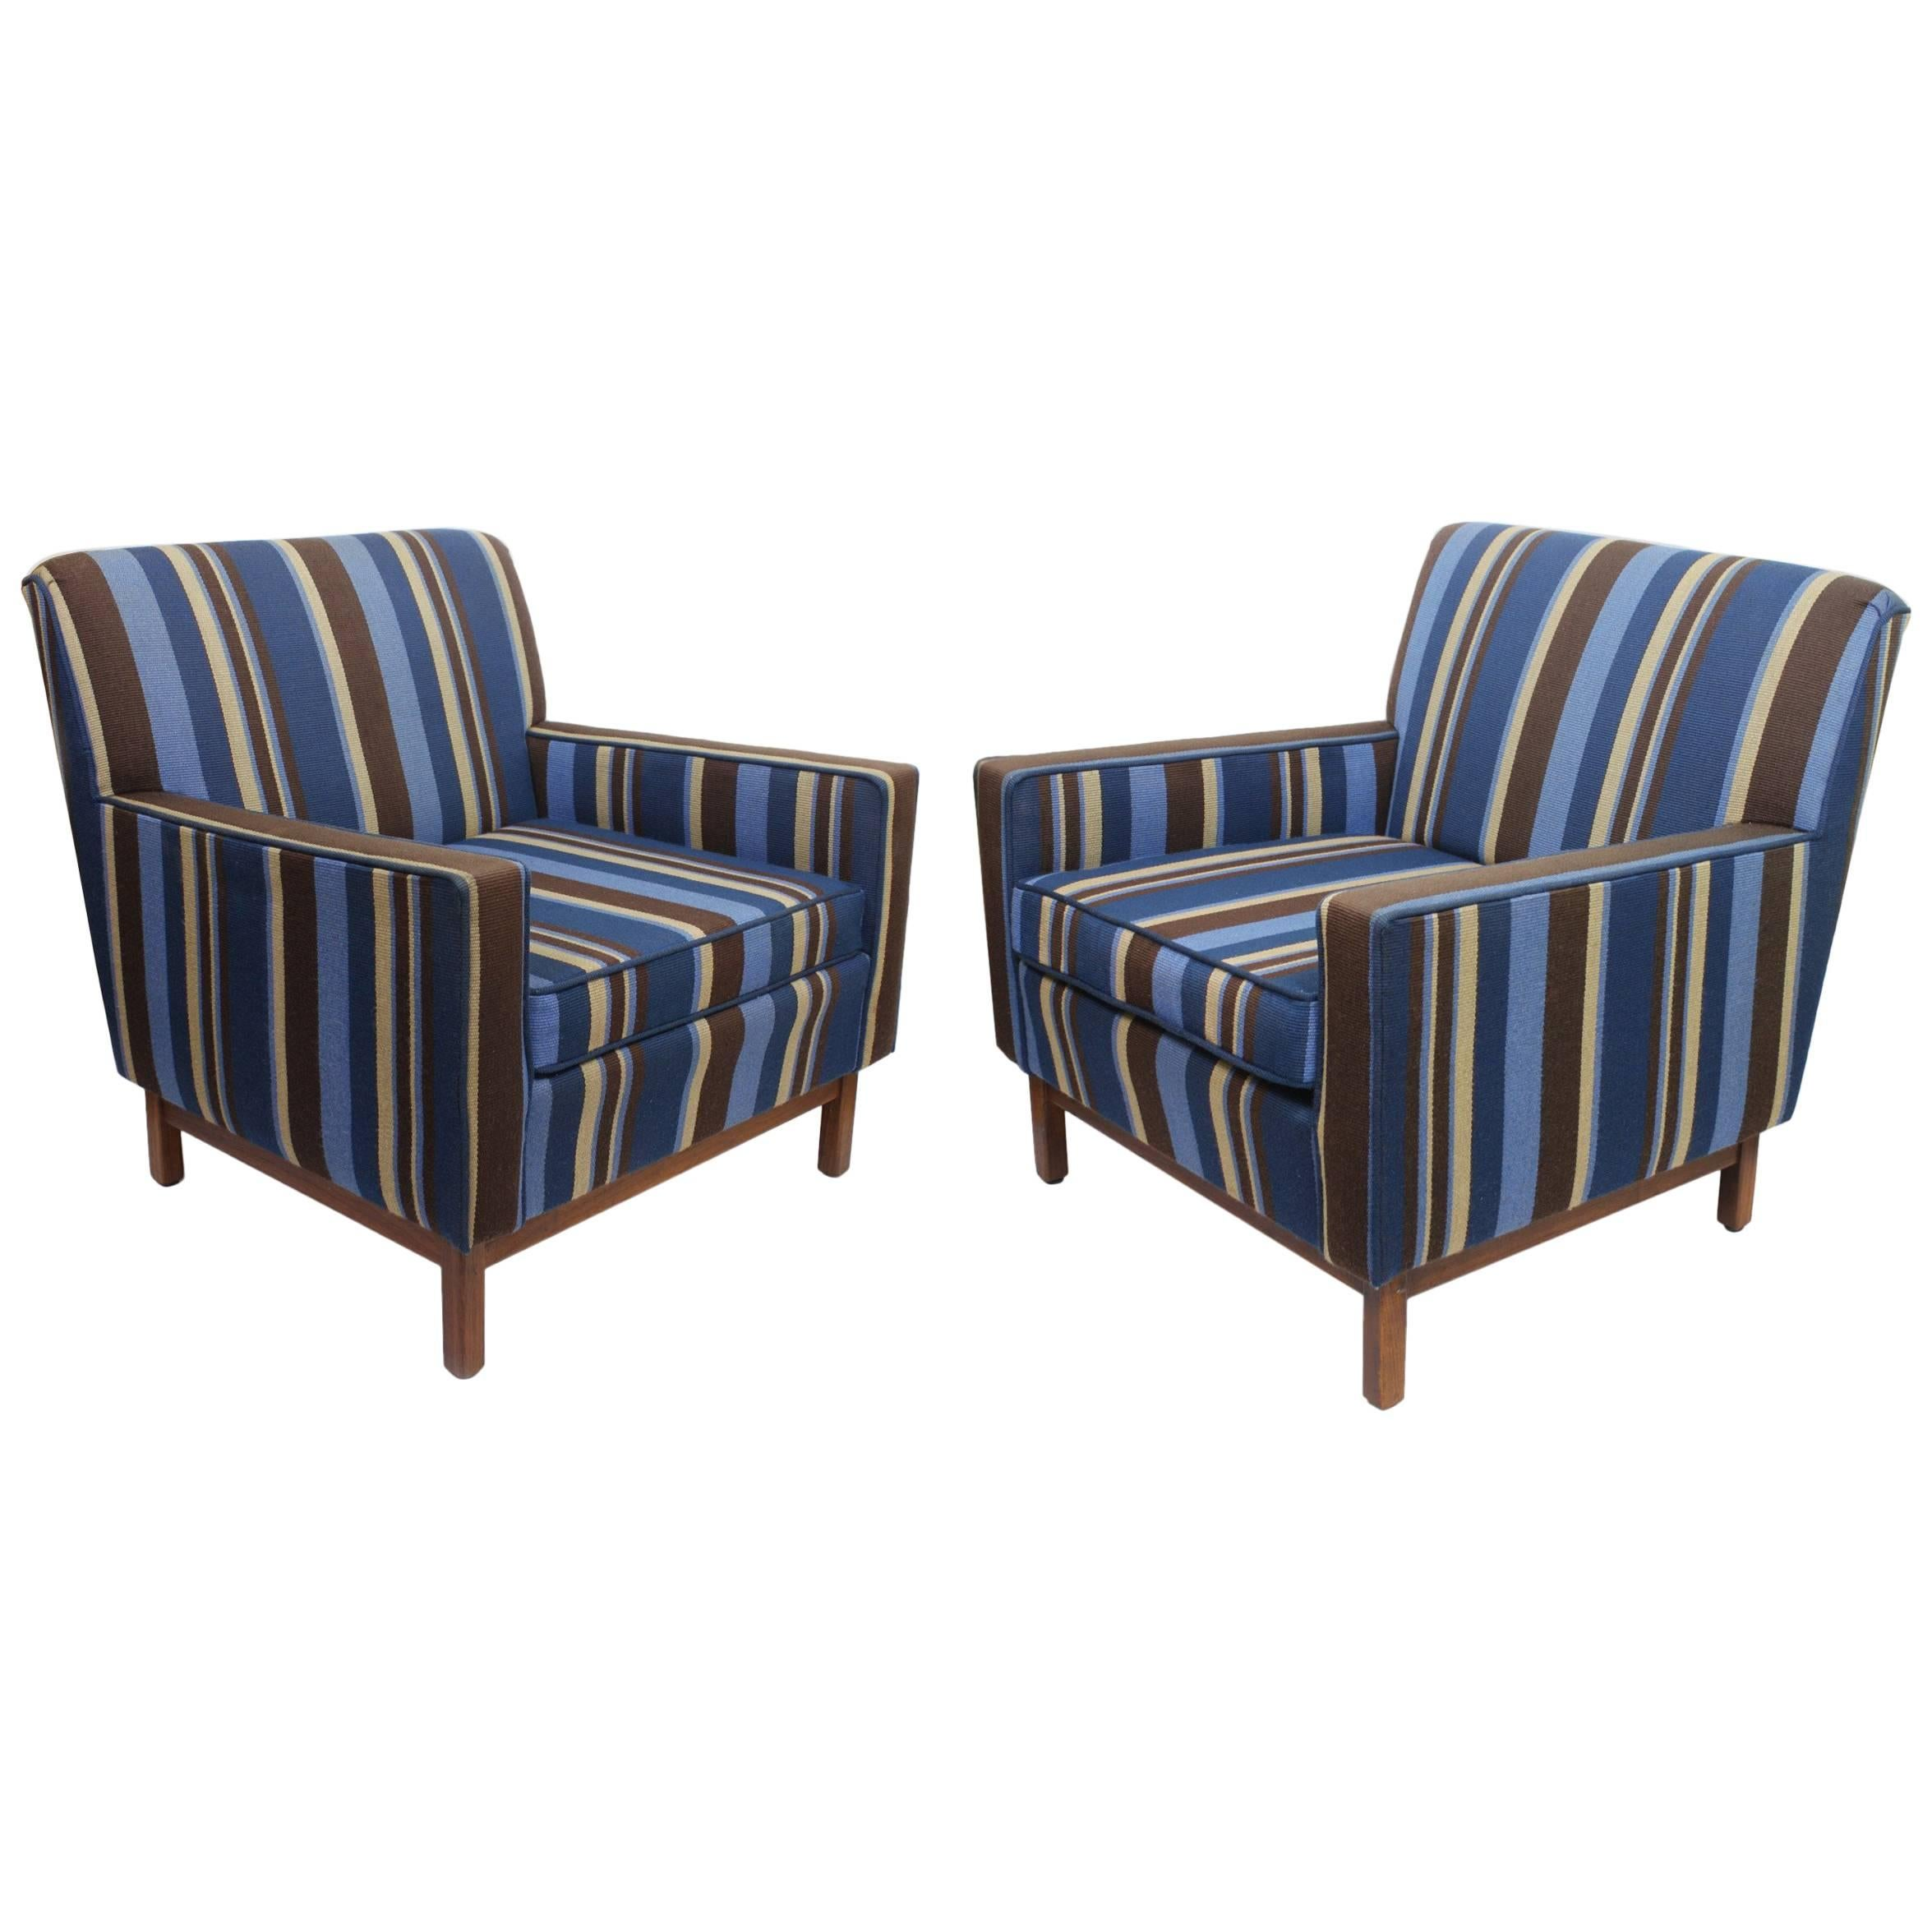 Genial Spectacular Pair Of Mid Century Modern Blue Striped Lounge Chairs By  Gunlocke For Sale